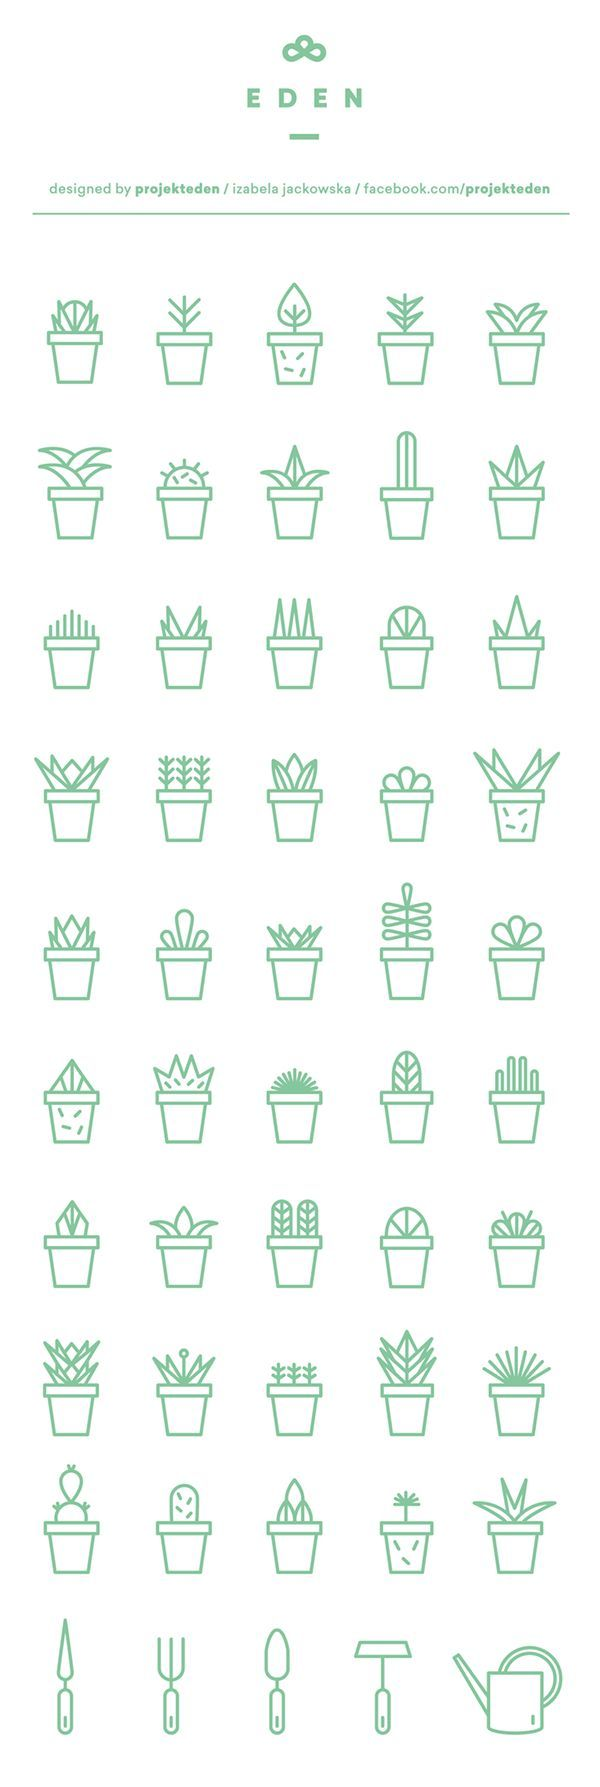 Green succulents icon set for free download. Made with love to cactus and hand painted flower pots made by projekt EDEN